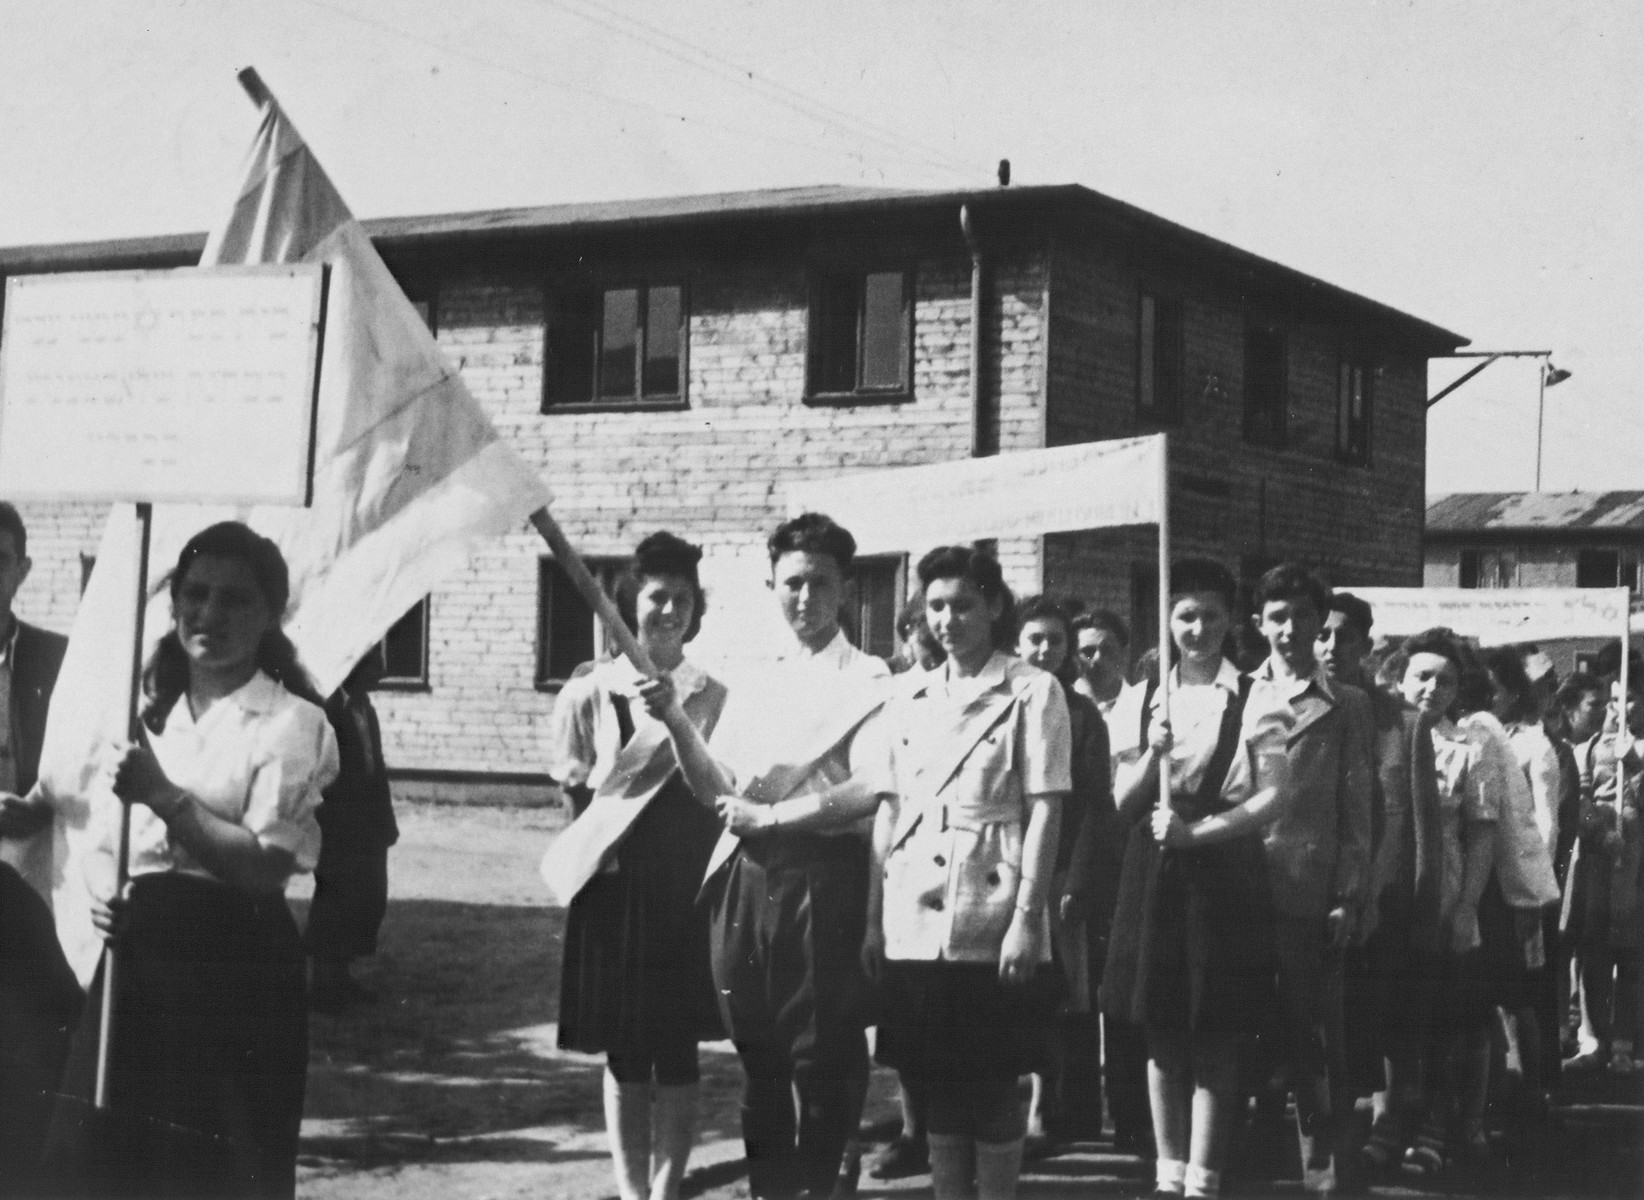 Jewish DP youth march with flags and banners in a Zionist demonstration at the Schlachtensee displaced persons camp.    Among those pictured is Regina Laks (on the left next to the flag).  Also pictured are Hanka Drescher (holding sign?), Salek Schulman, Lucia Weidberg, Tunka (last name unknown), Reyna (last name unknown), and Helen Friedman.